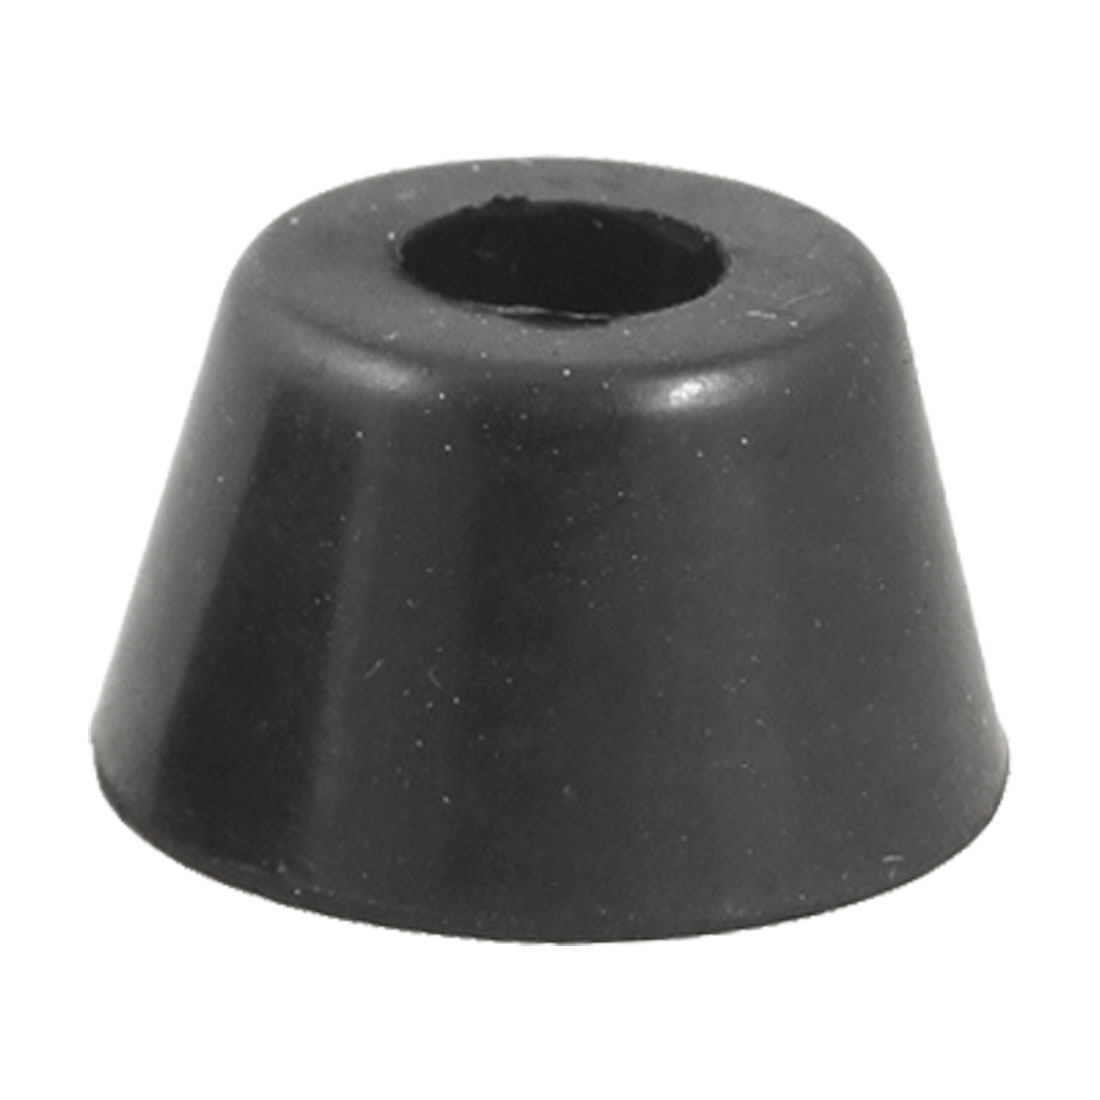 10 Pcs 25mm x 15mm Chair Leg Cone Shape Recessed Rubber Feet Bumpers